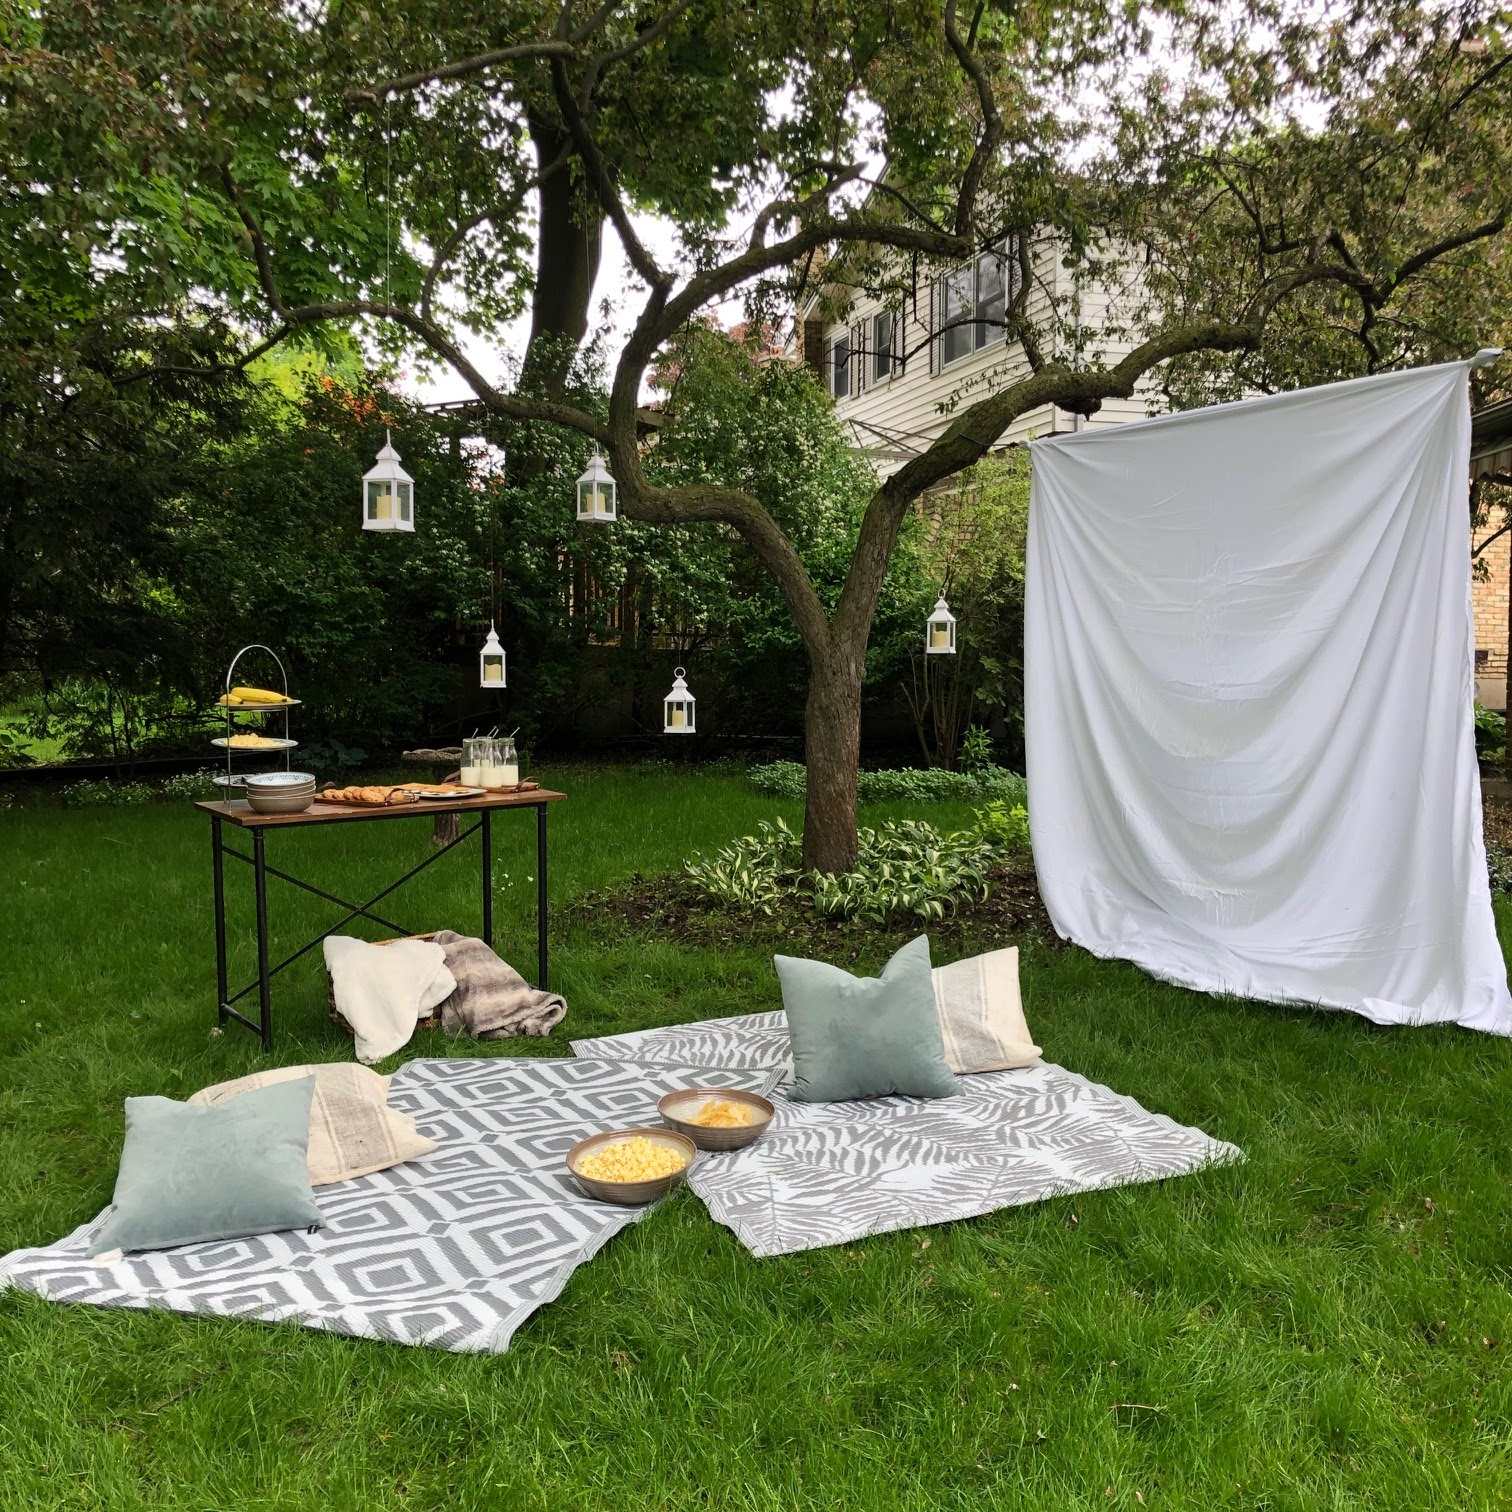 outdoor movie night with lanterns hanging in a tree, a bed sheet movie screen, rugs on the floor